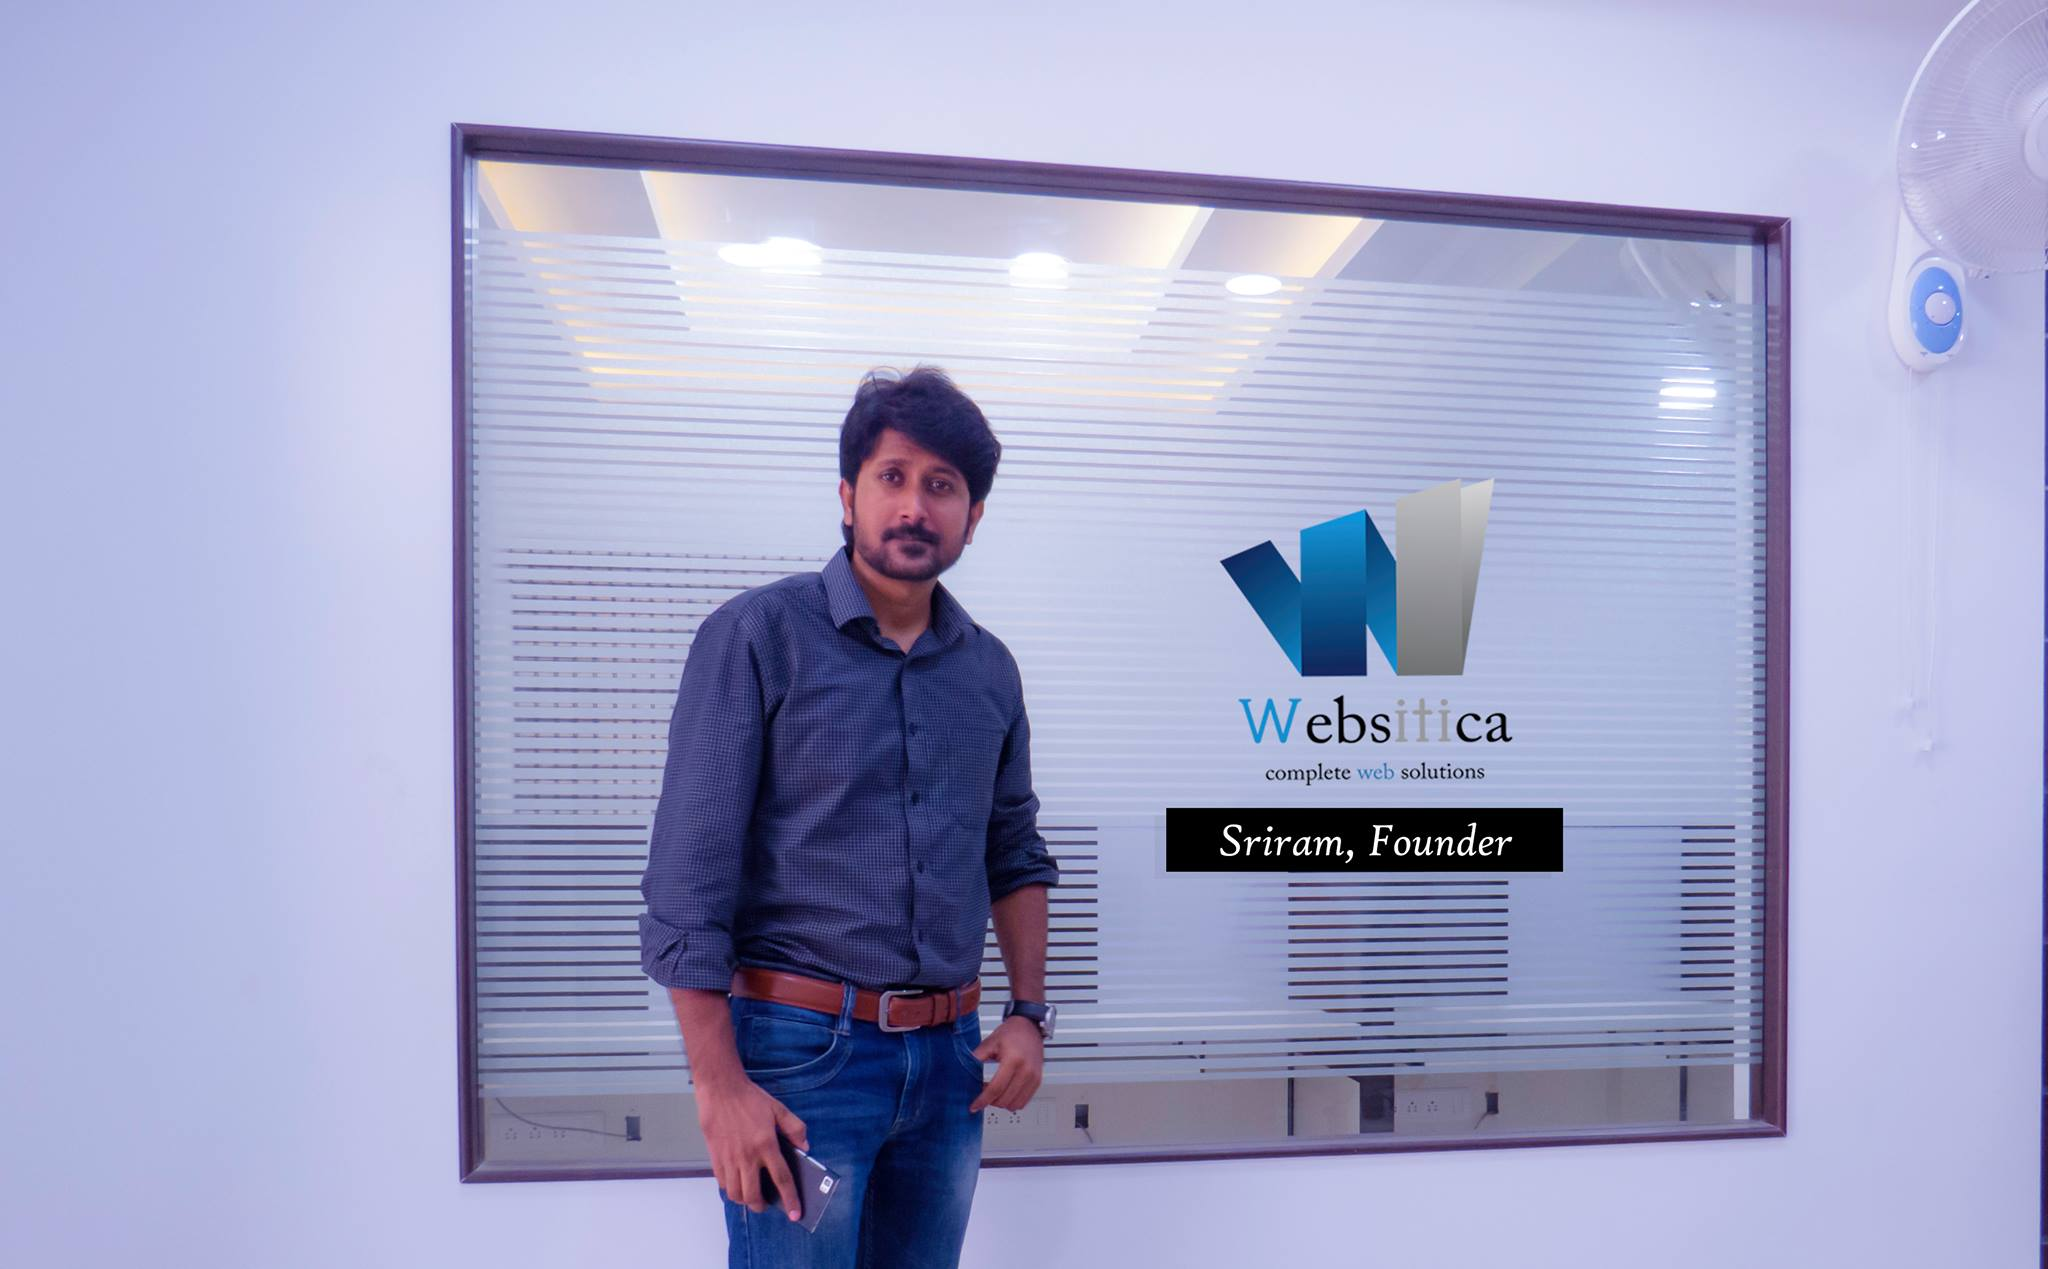 Sriram Founder - Websitica